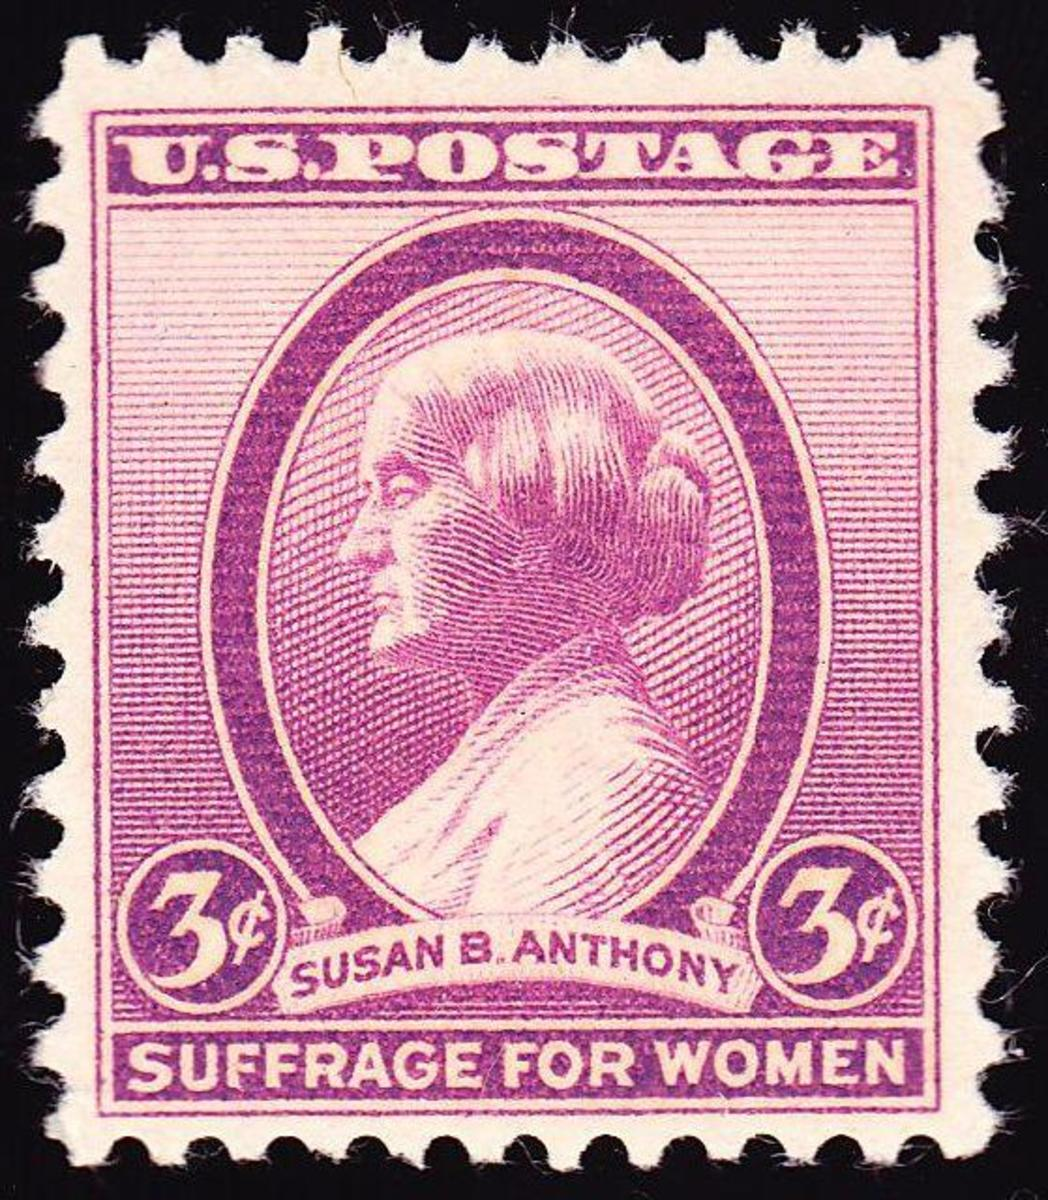 1936 Susan B. Anthony stamp. (Credit:Public Domain)